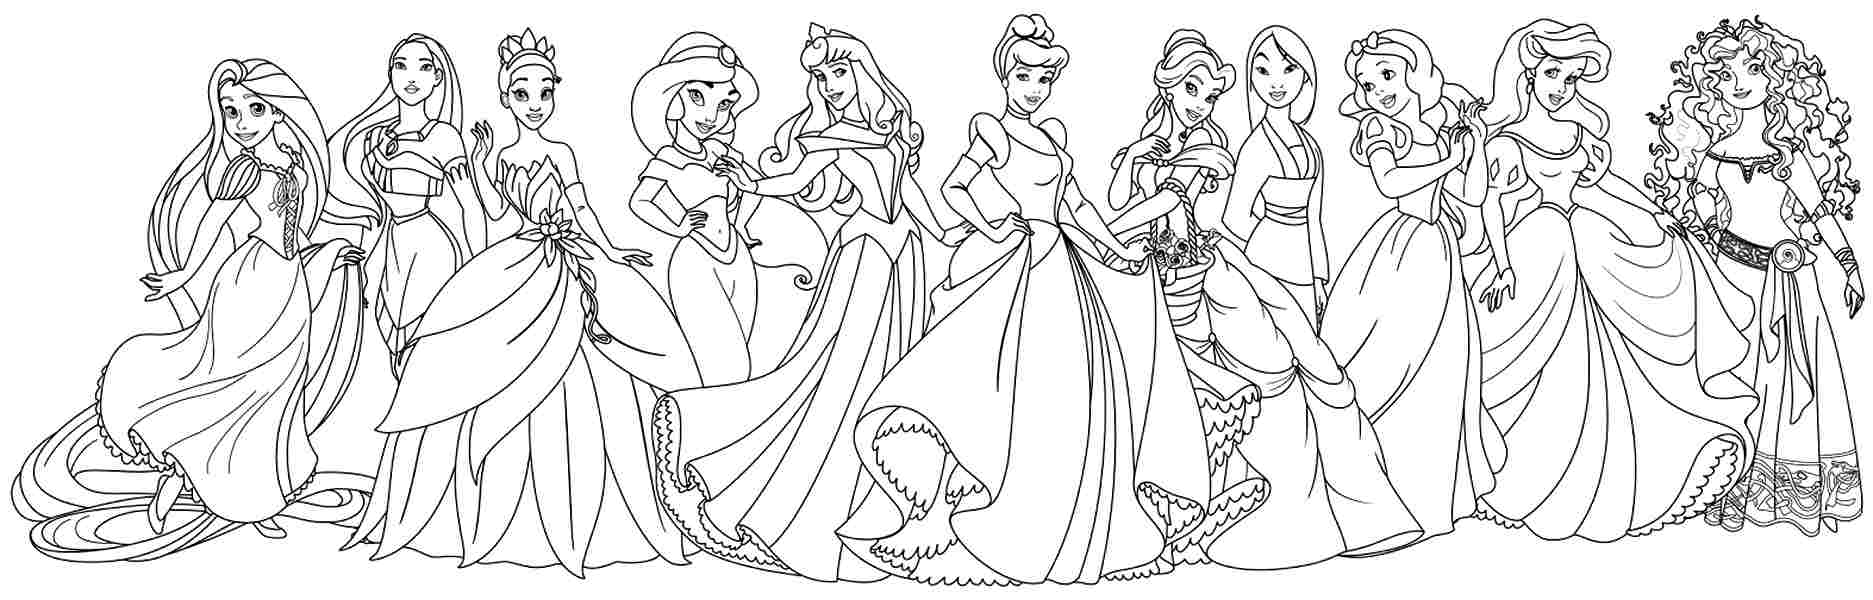 first disney characters coloring pages - photo#33